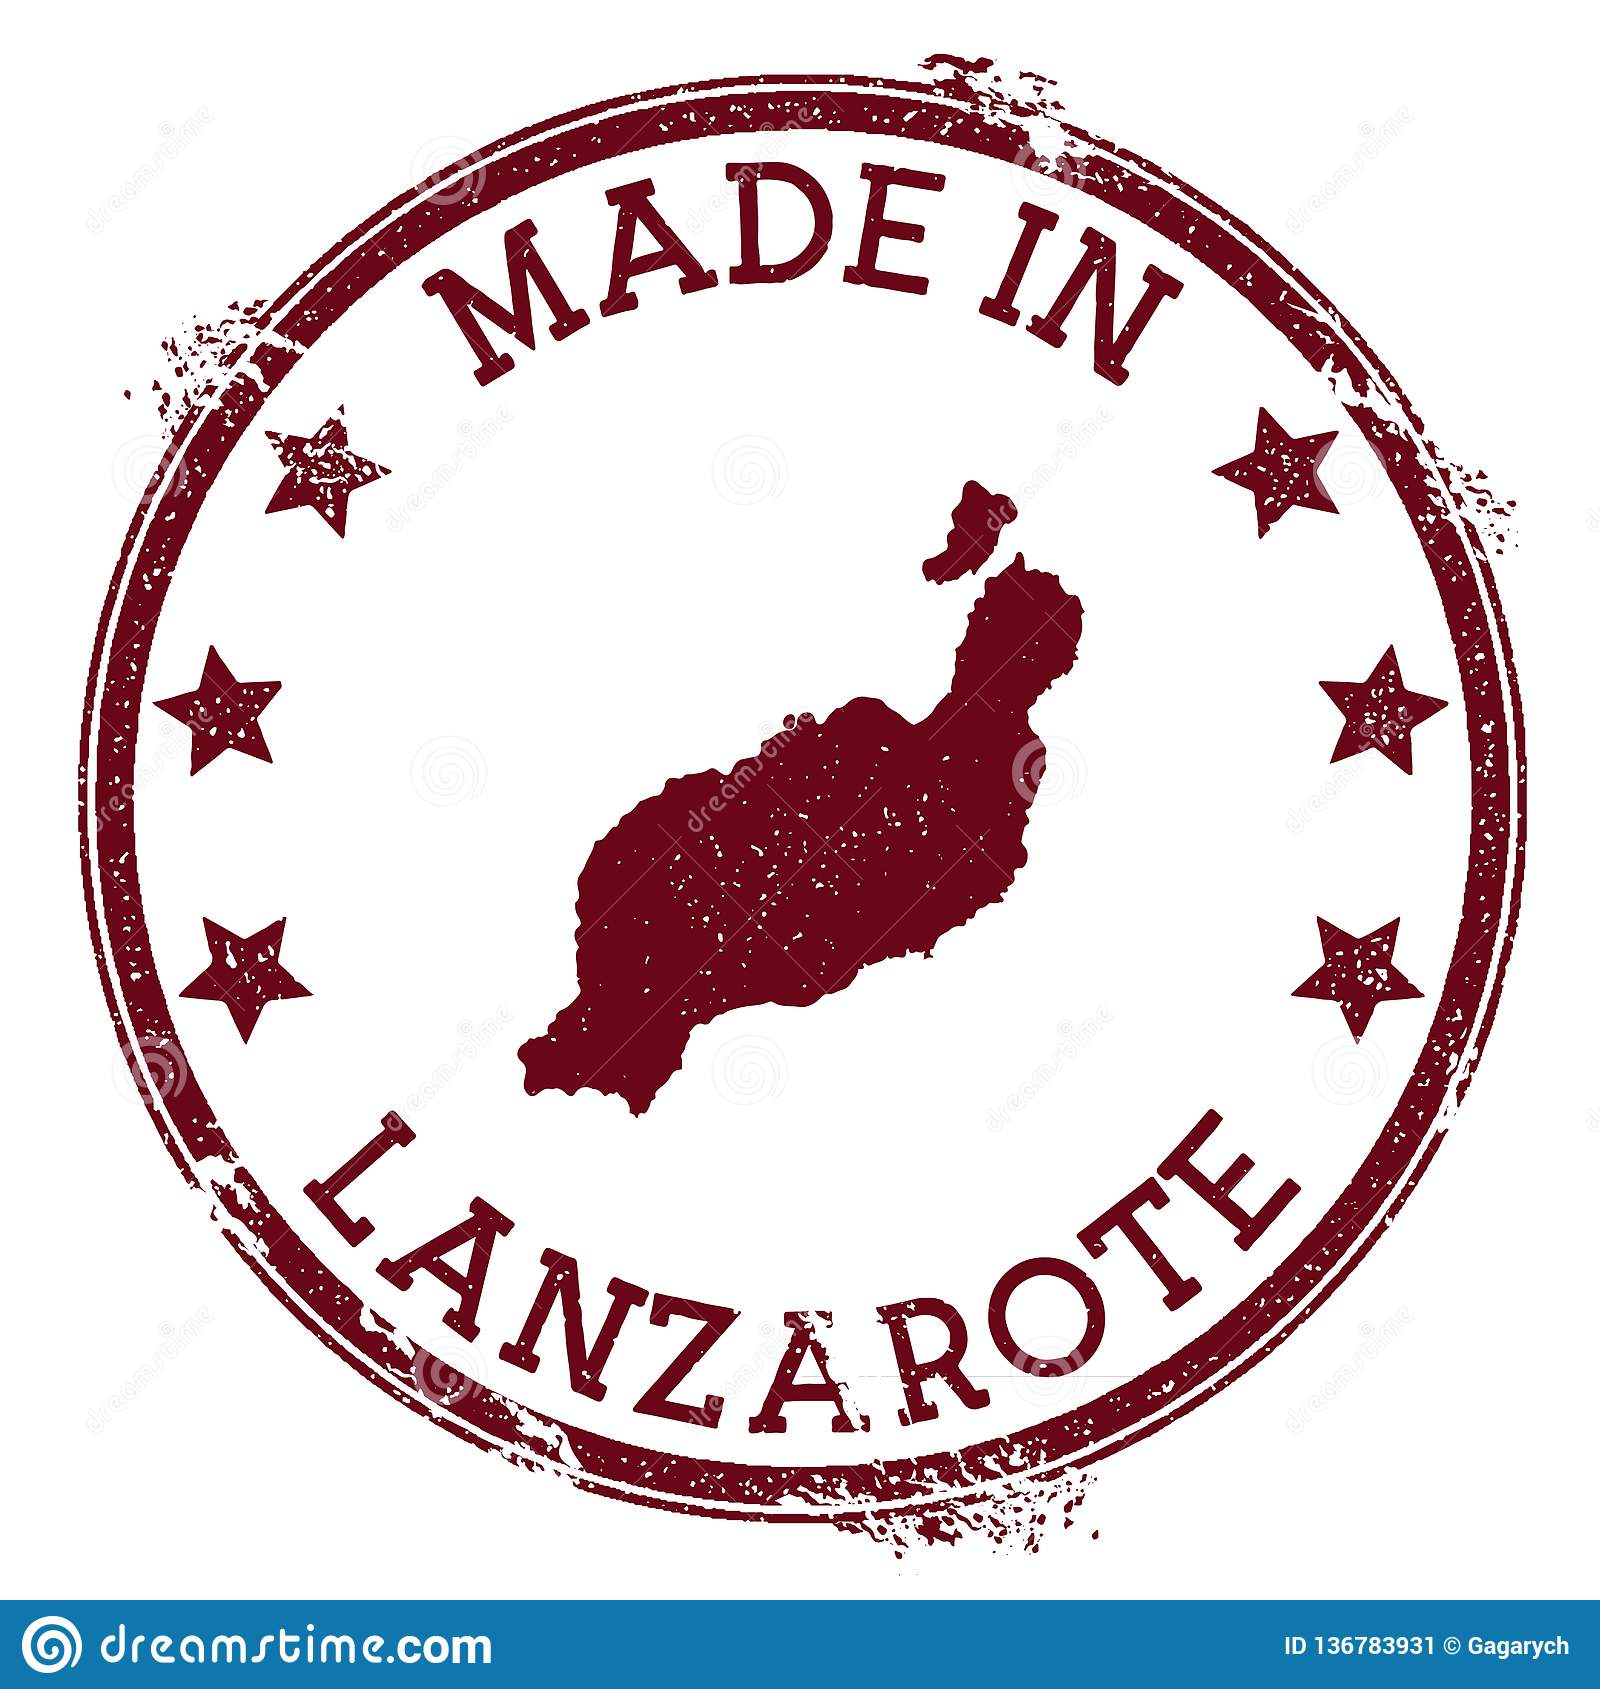 Made in Lanzarote stamp.